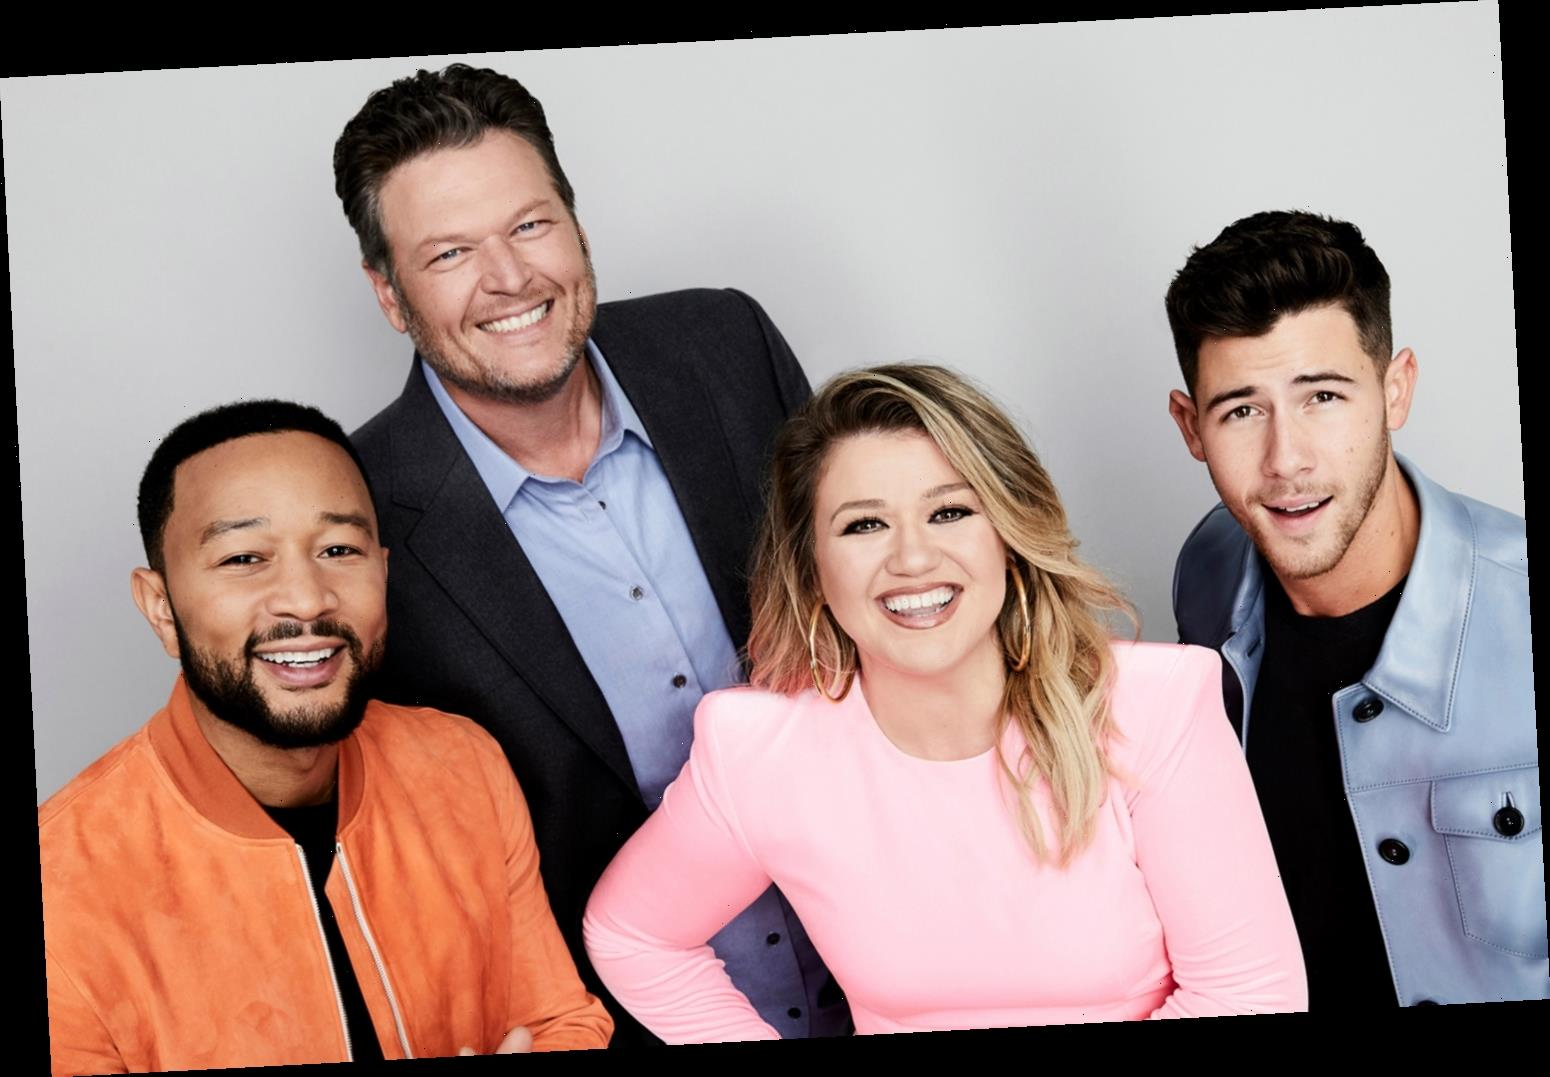 The Voice's past winners slam hit show for not helping them succeed in music business after starring on series